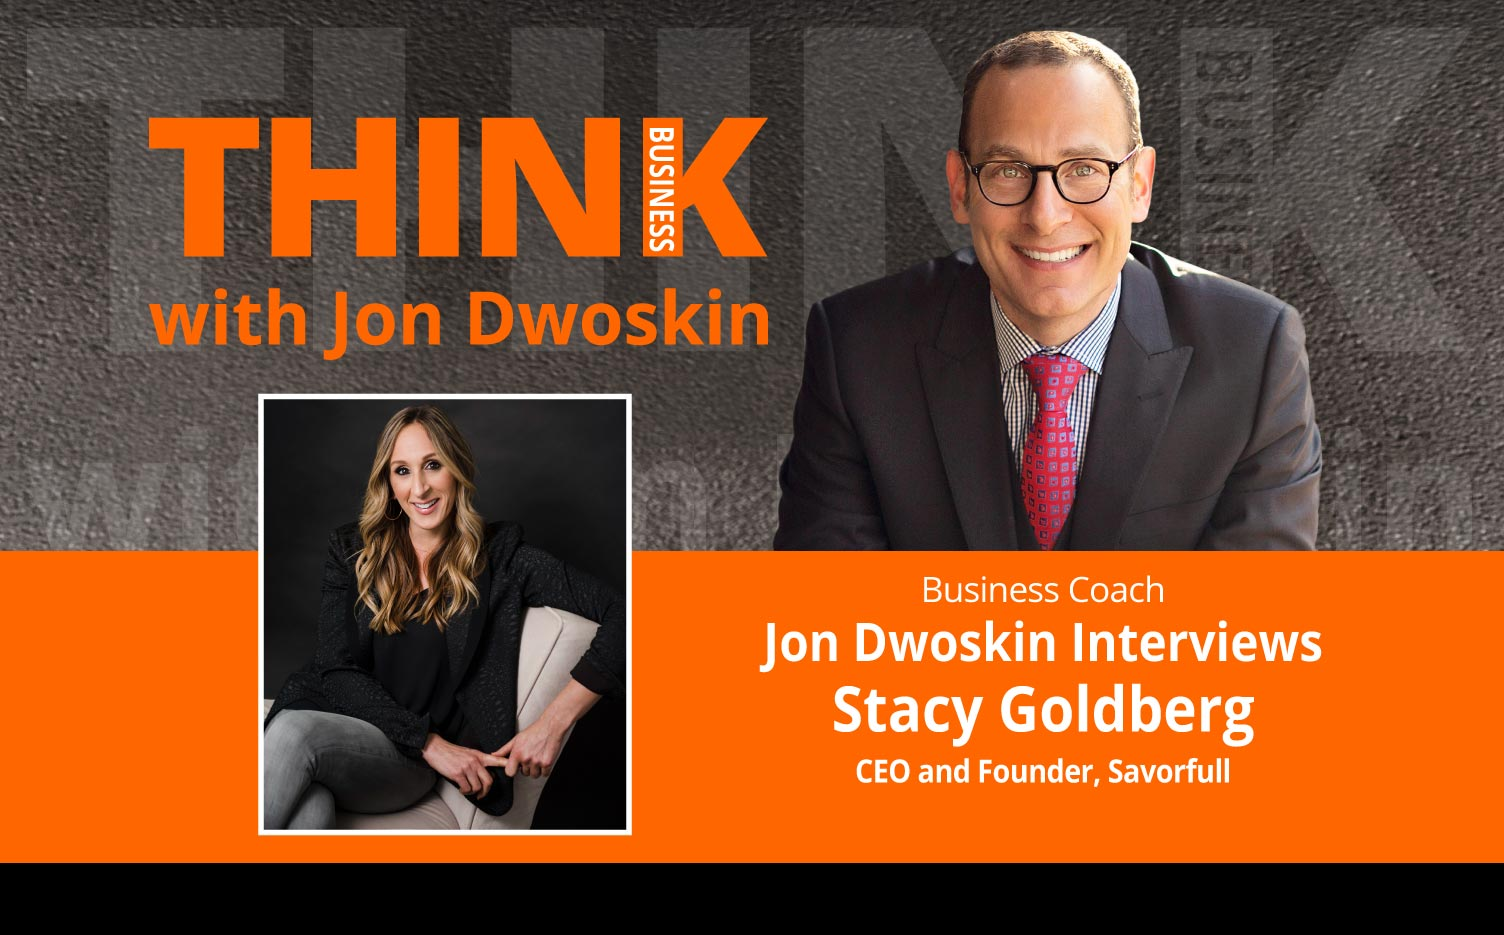 THINK Business Podcast: Jon Dwoskin Interviews Stacy Goldberg, CEO and Founder, Savorfull